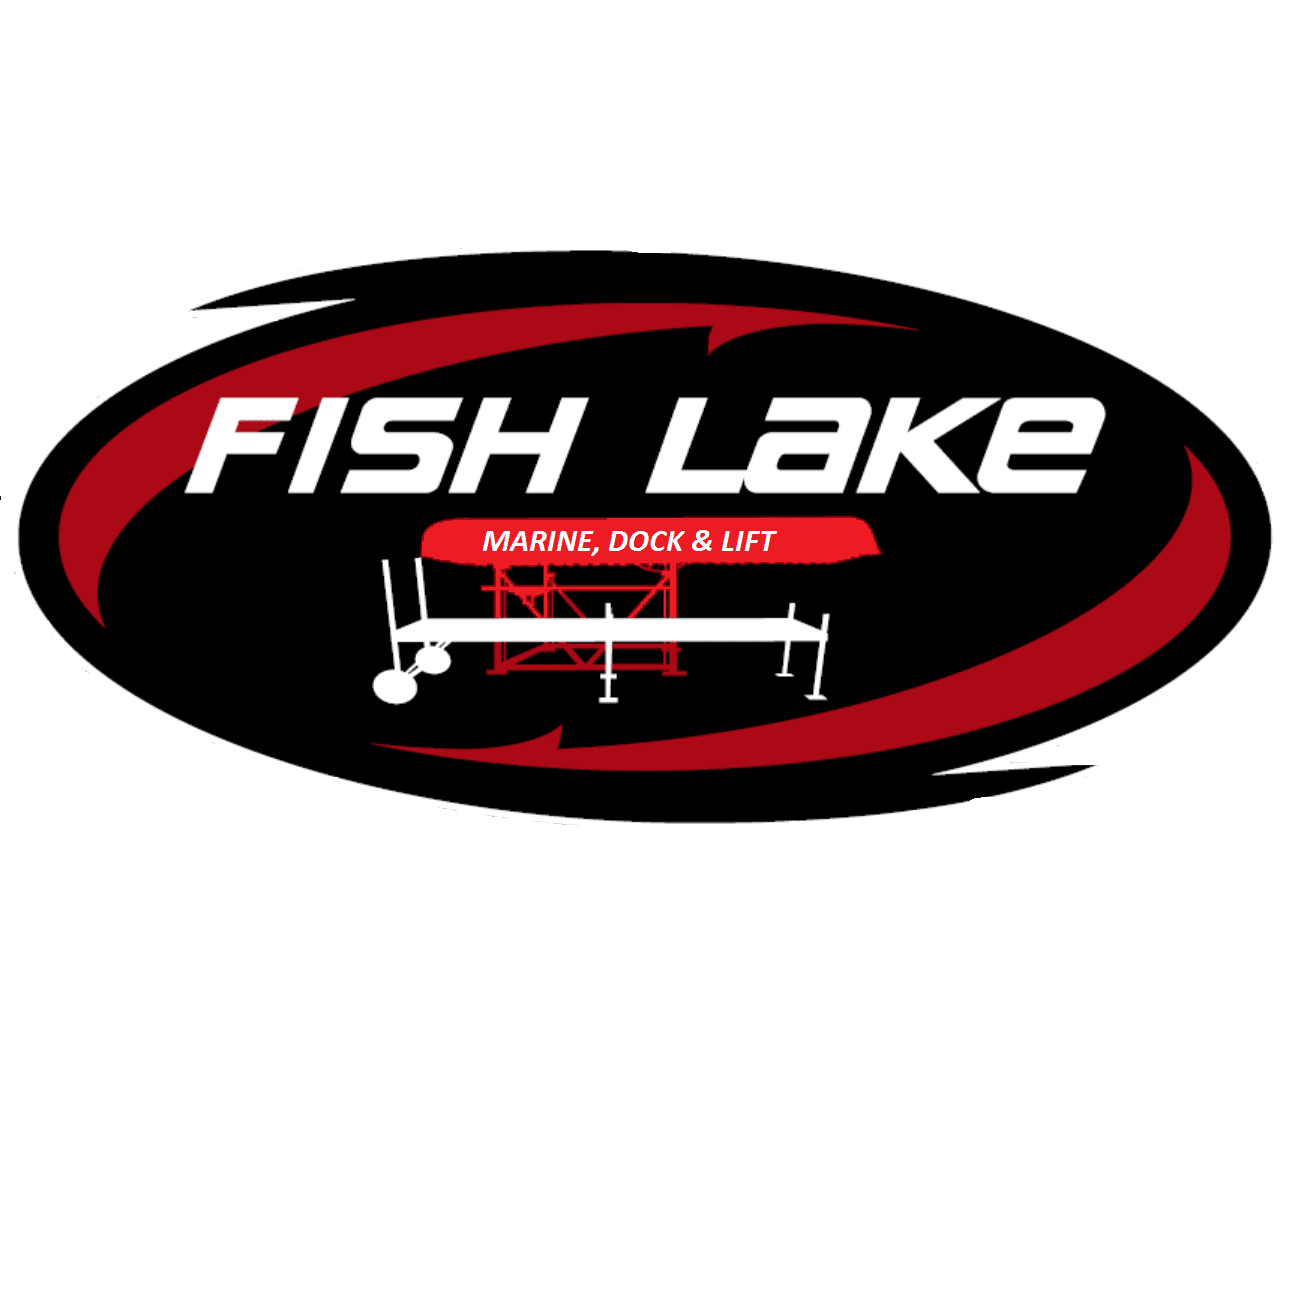 Fish Lake Dock & Lift